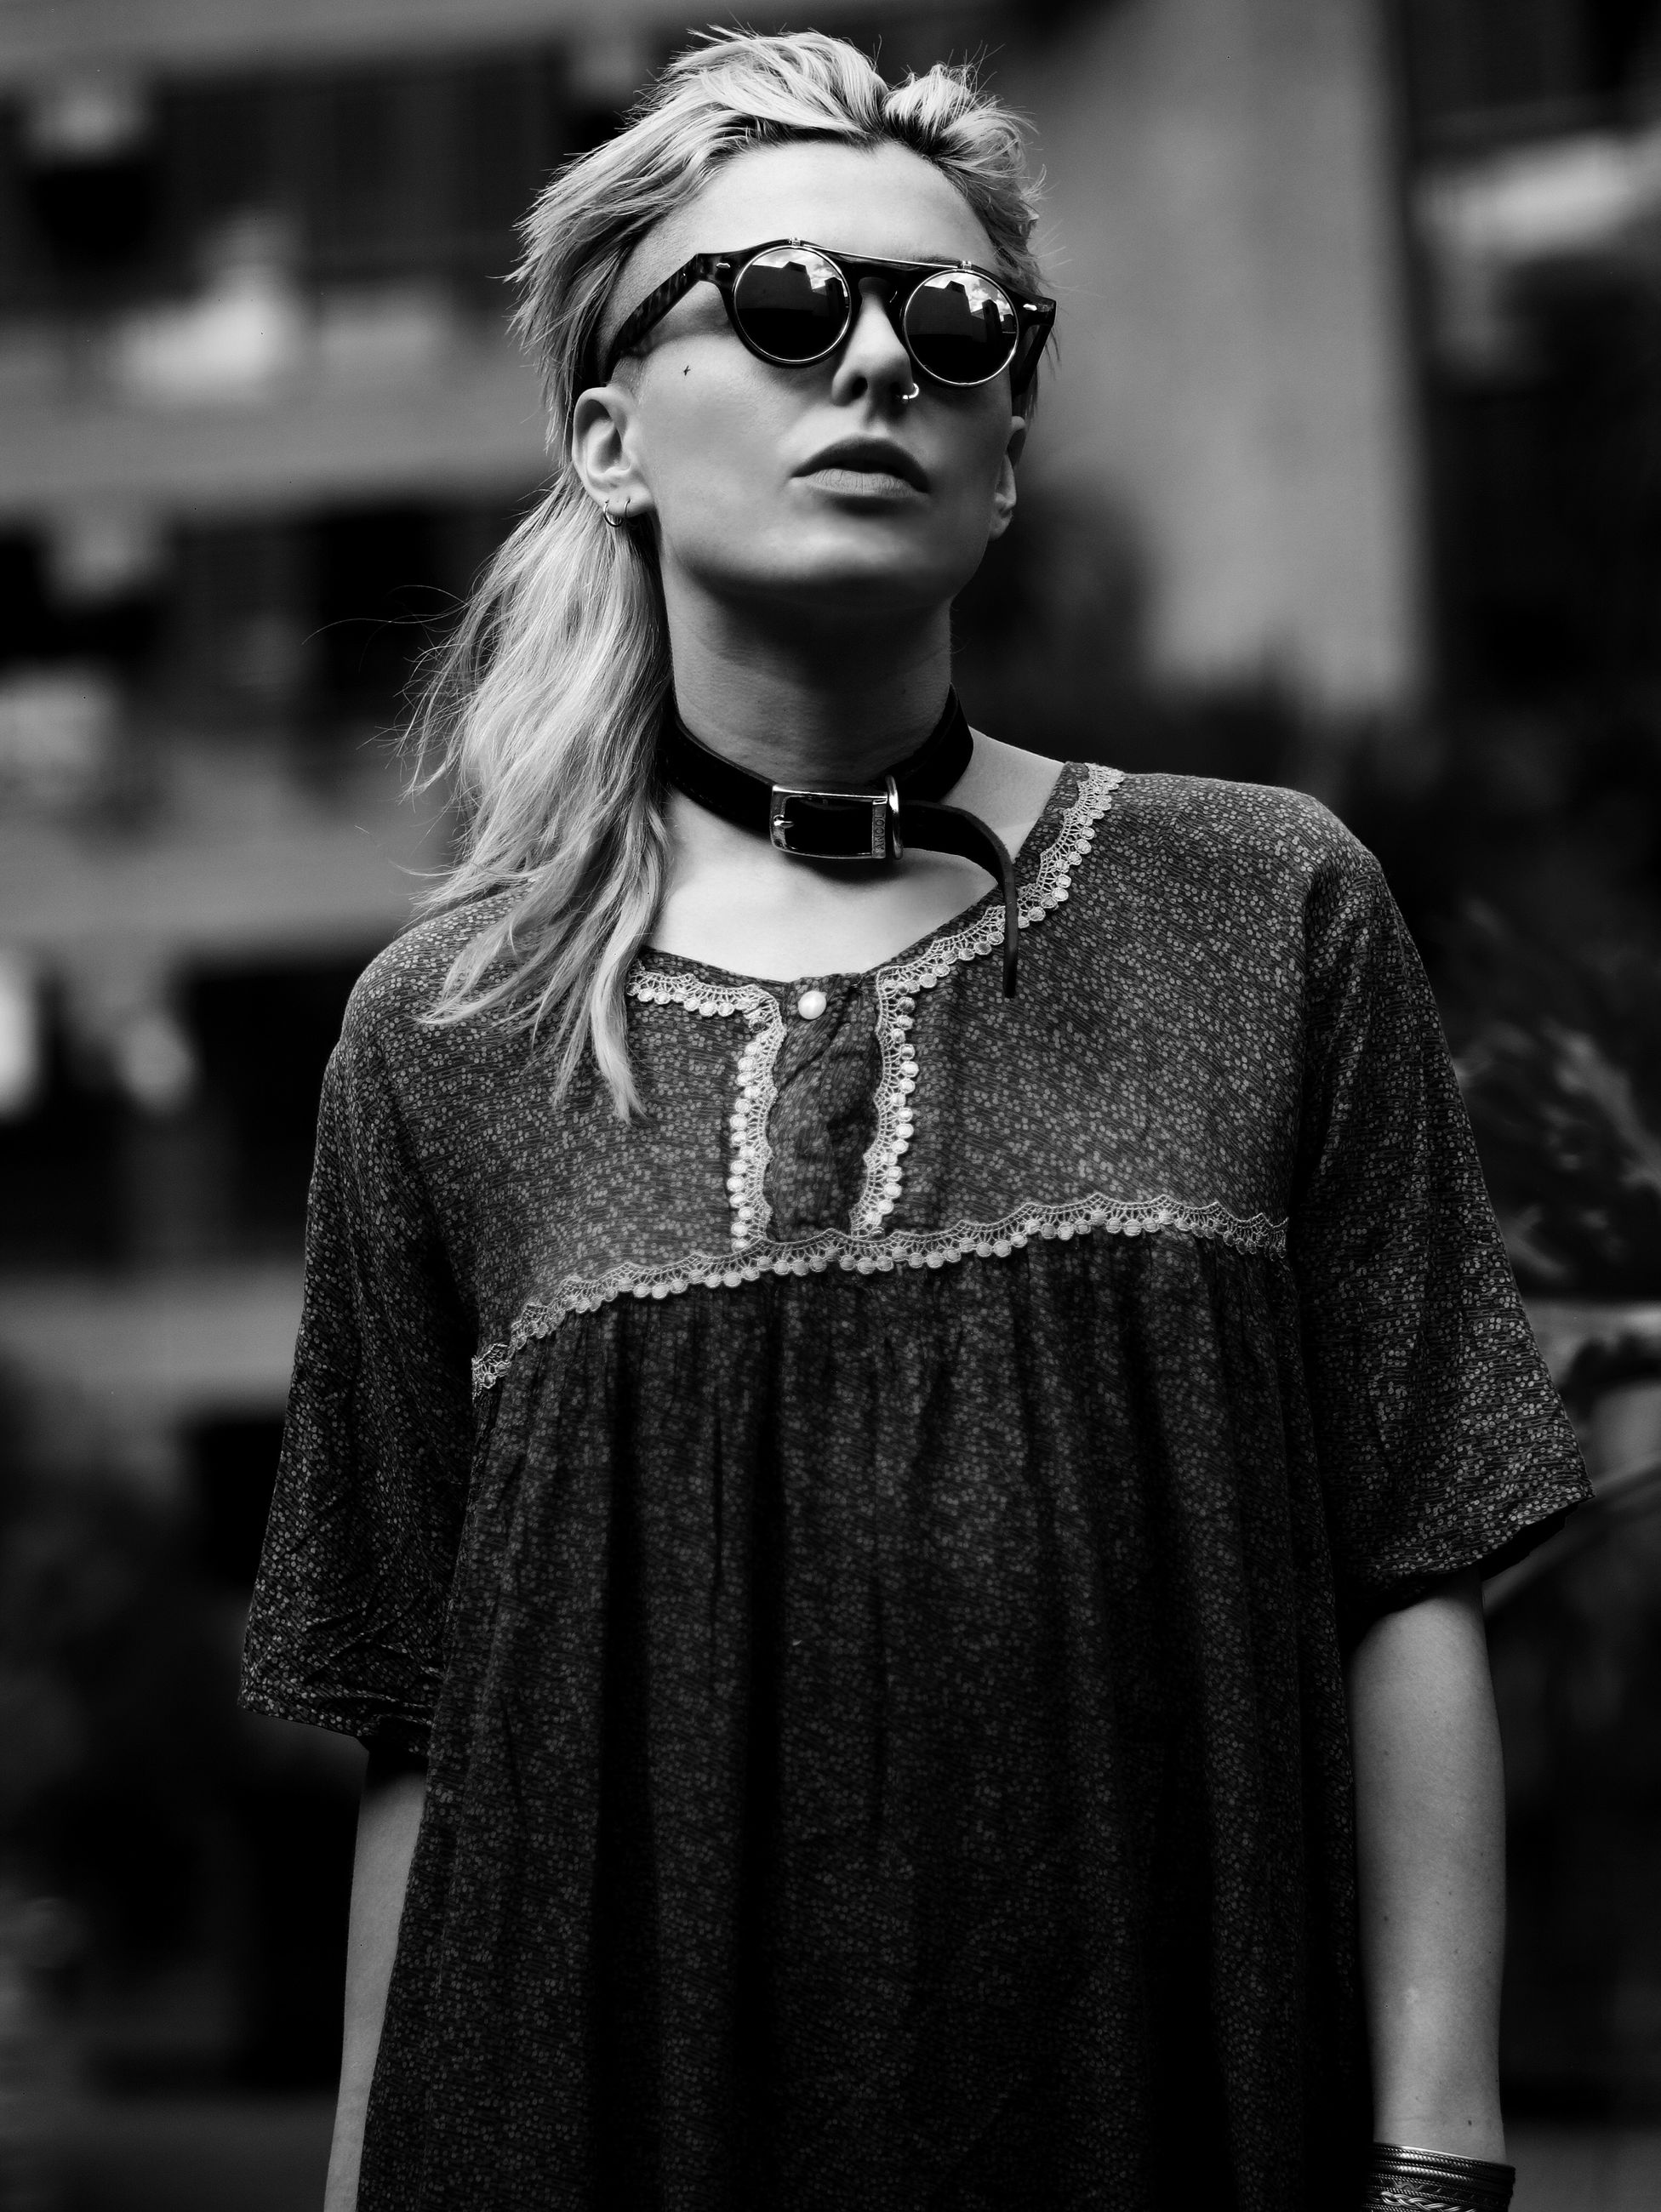 sunglasses, fashion, focus on foreground, real people, one person, cool, standing, young adult, blond hair, outdoors, day, young women, close-up, people